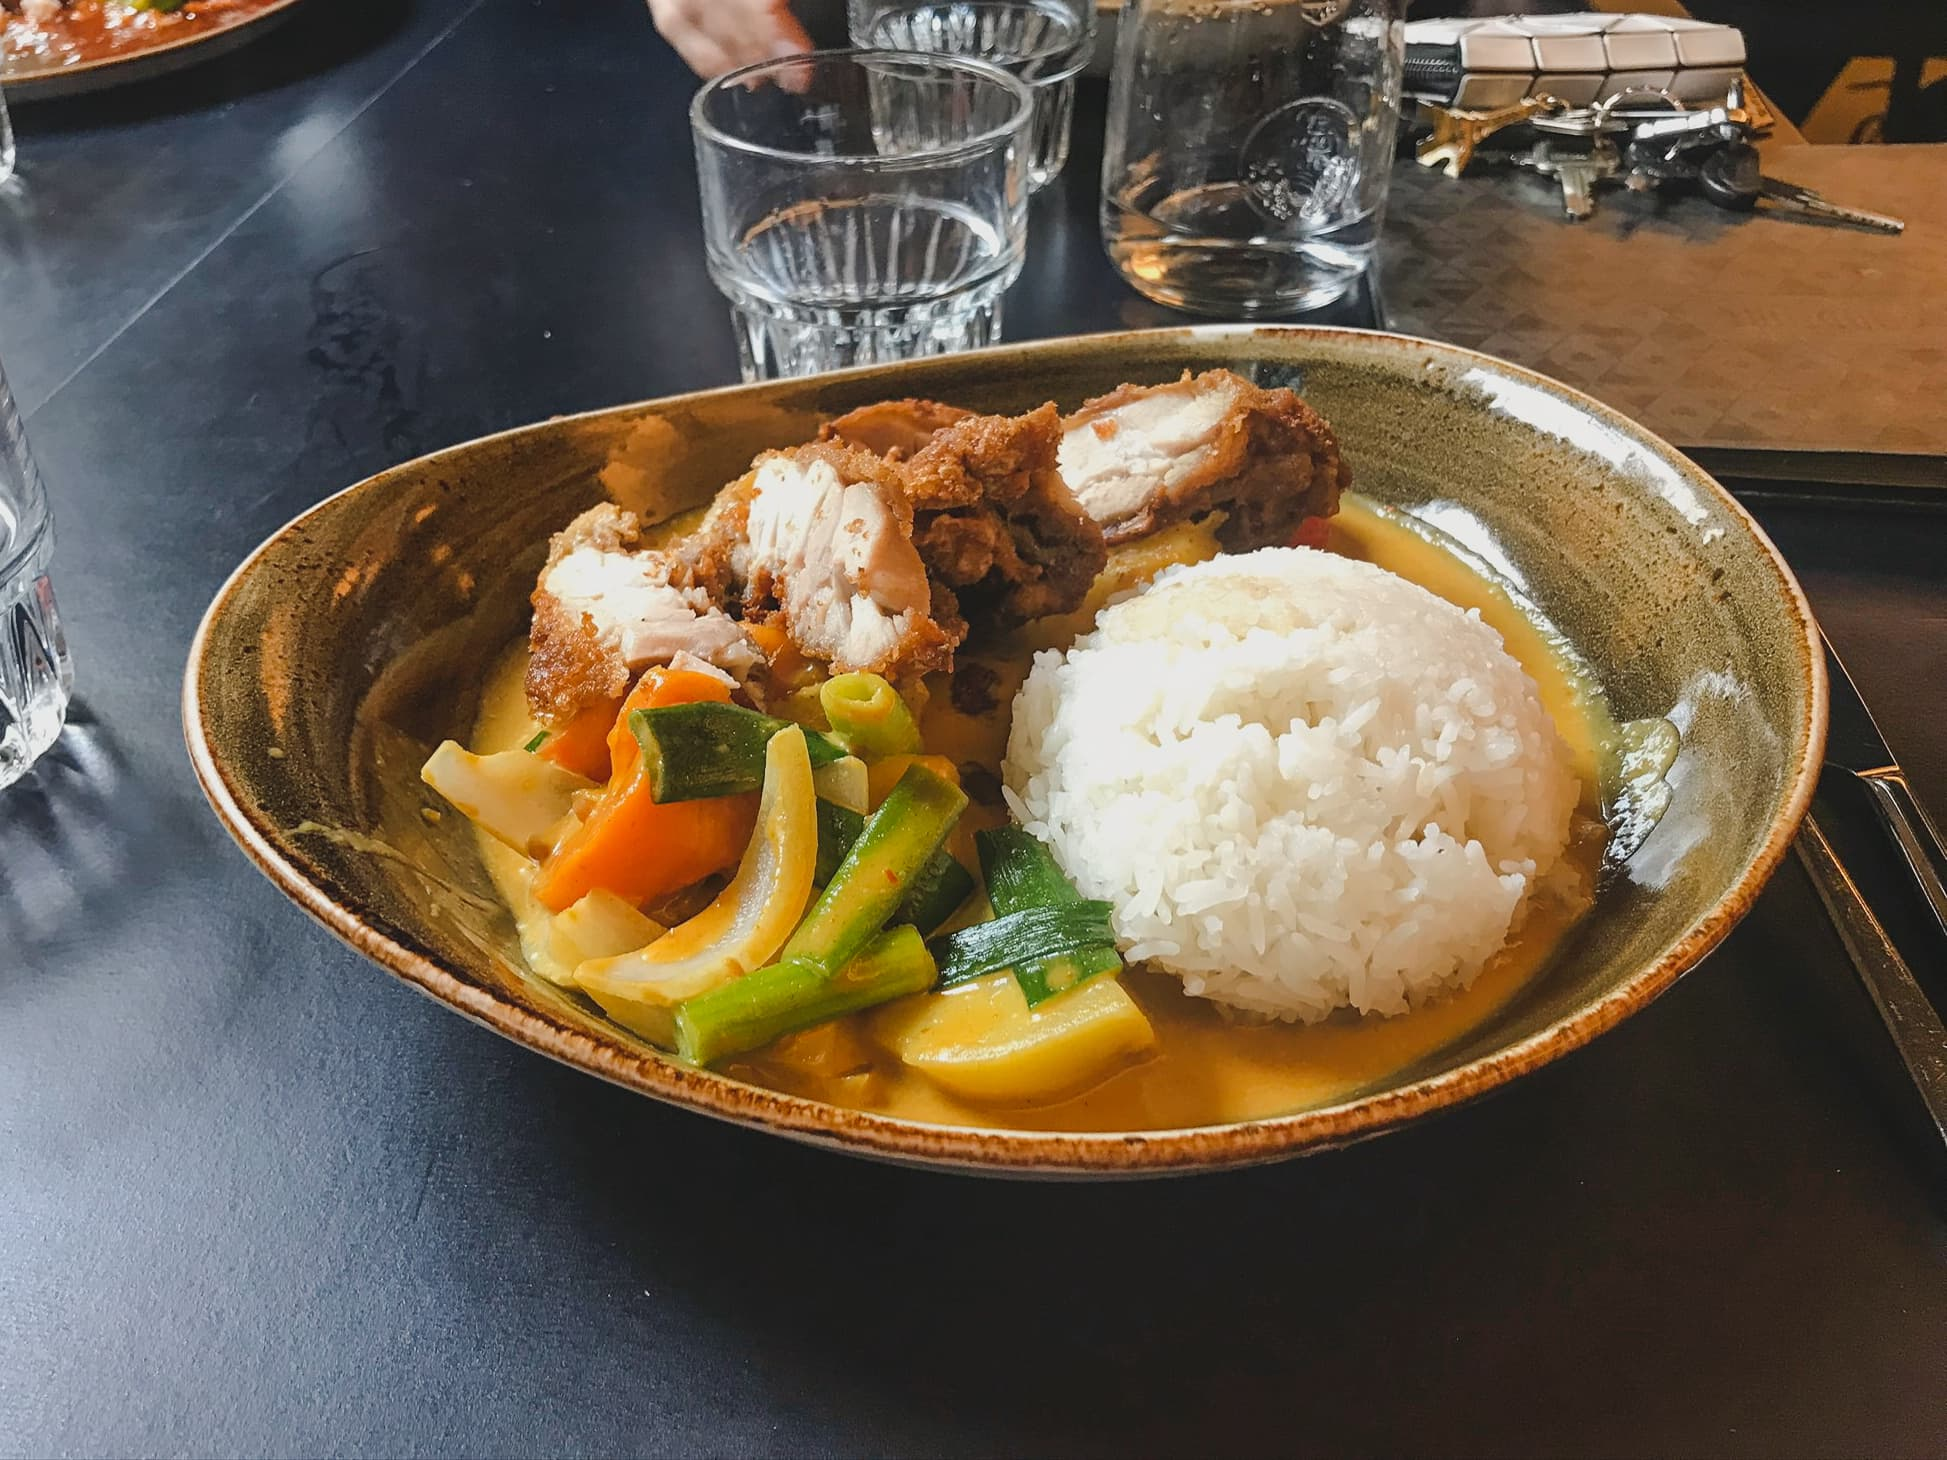 Speaking of where to eat in Berlin, the crispy duck with vegetables covered in a curry sauce is the way to go